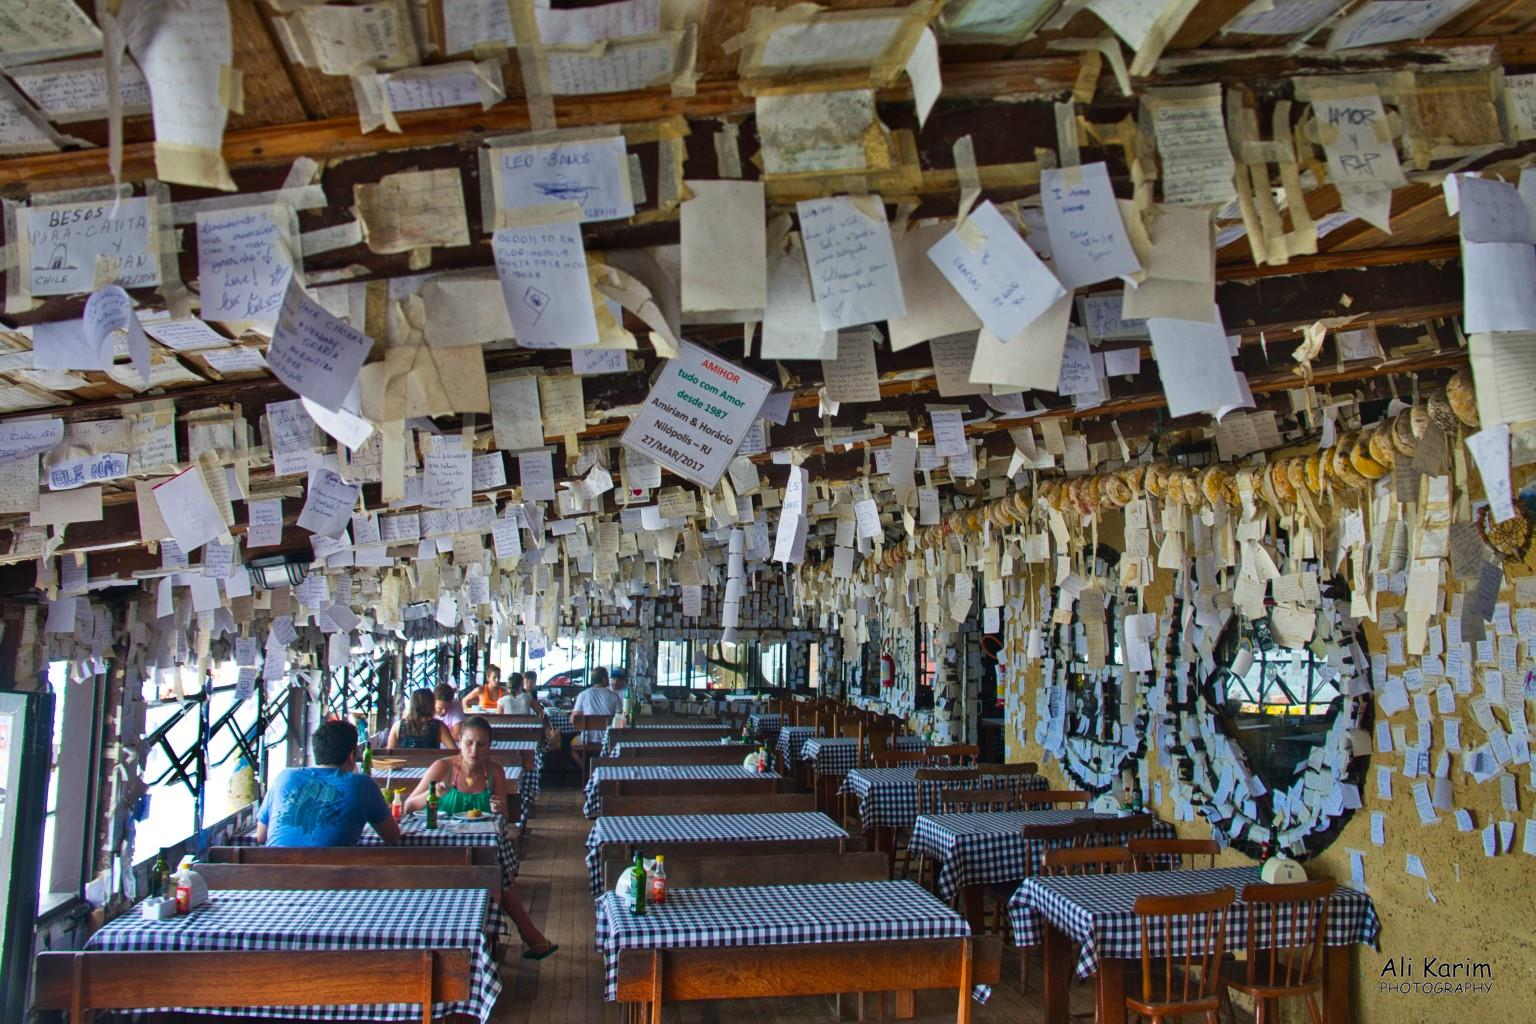 Florianópolis, Brazil Arante restaurant on the Pantano do Sul beach; with thousands of notes posted everywhere